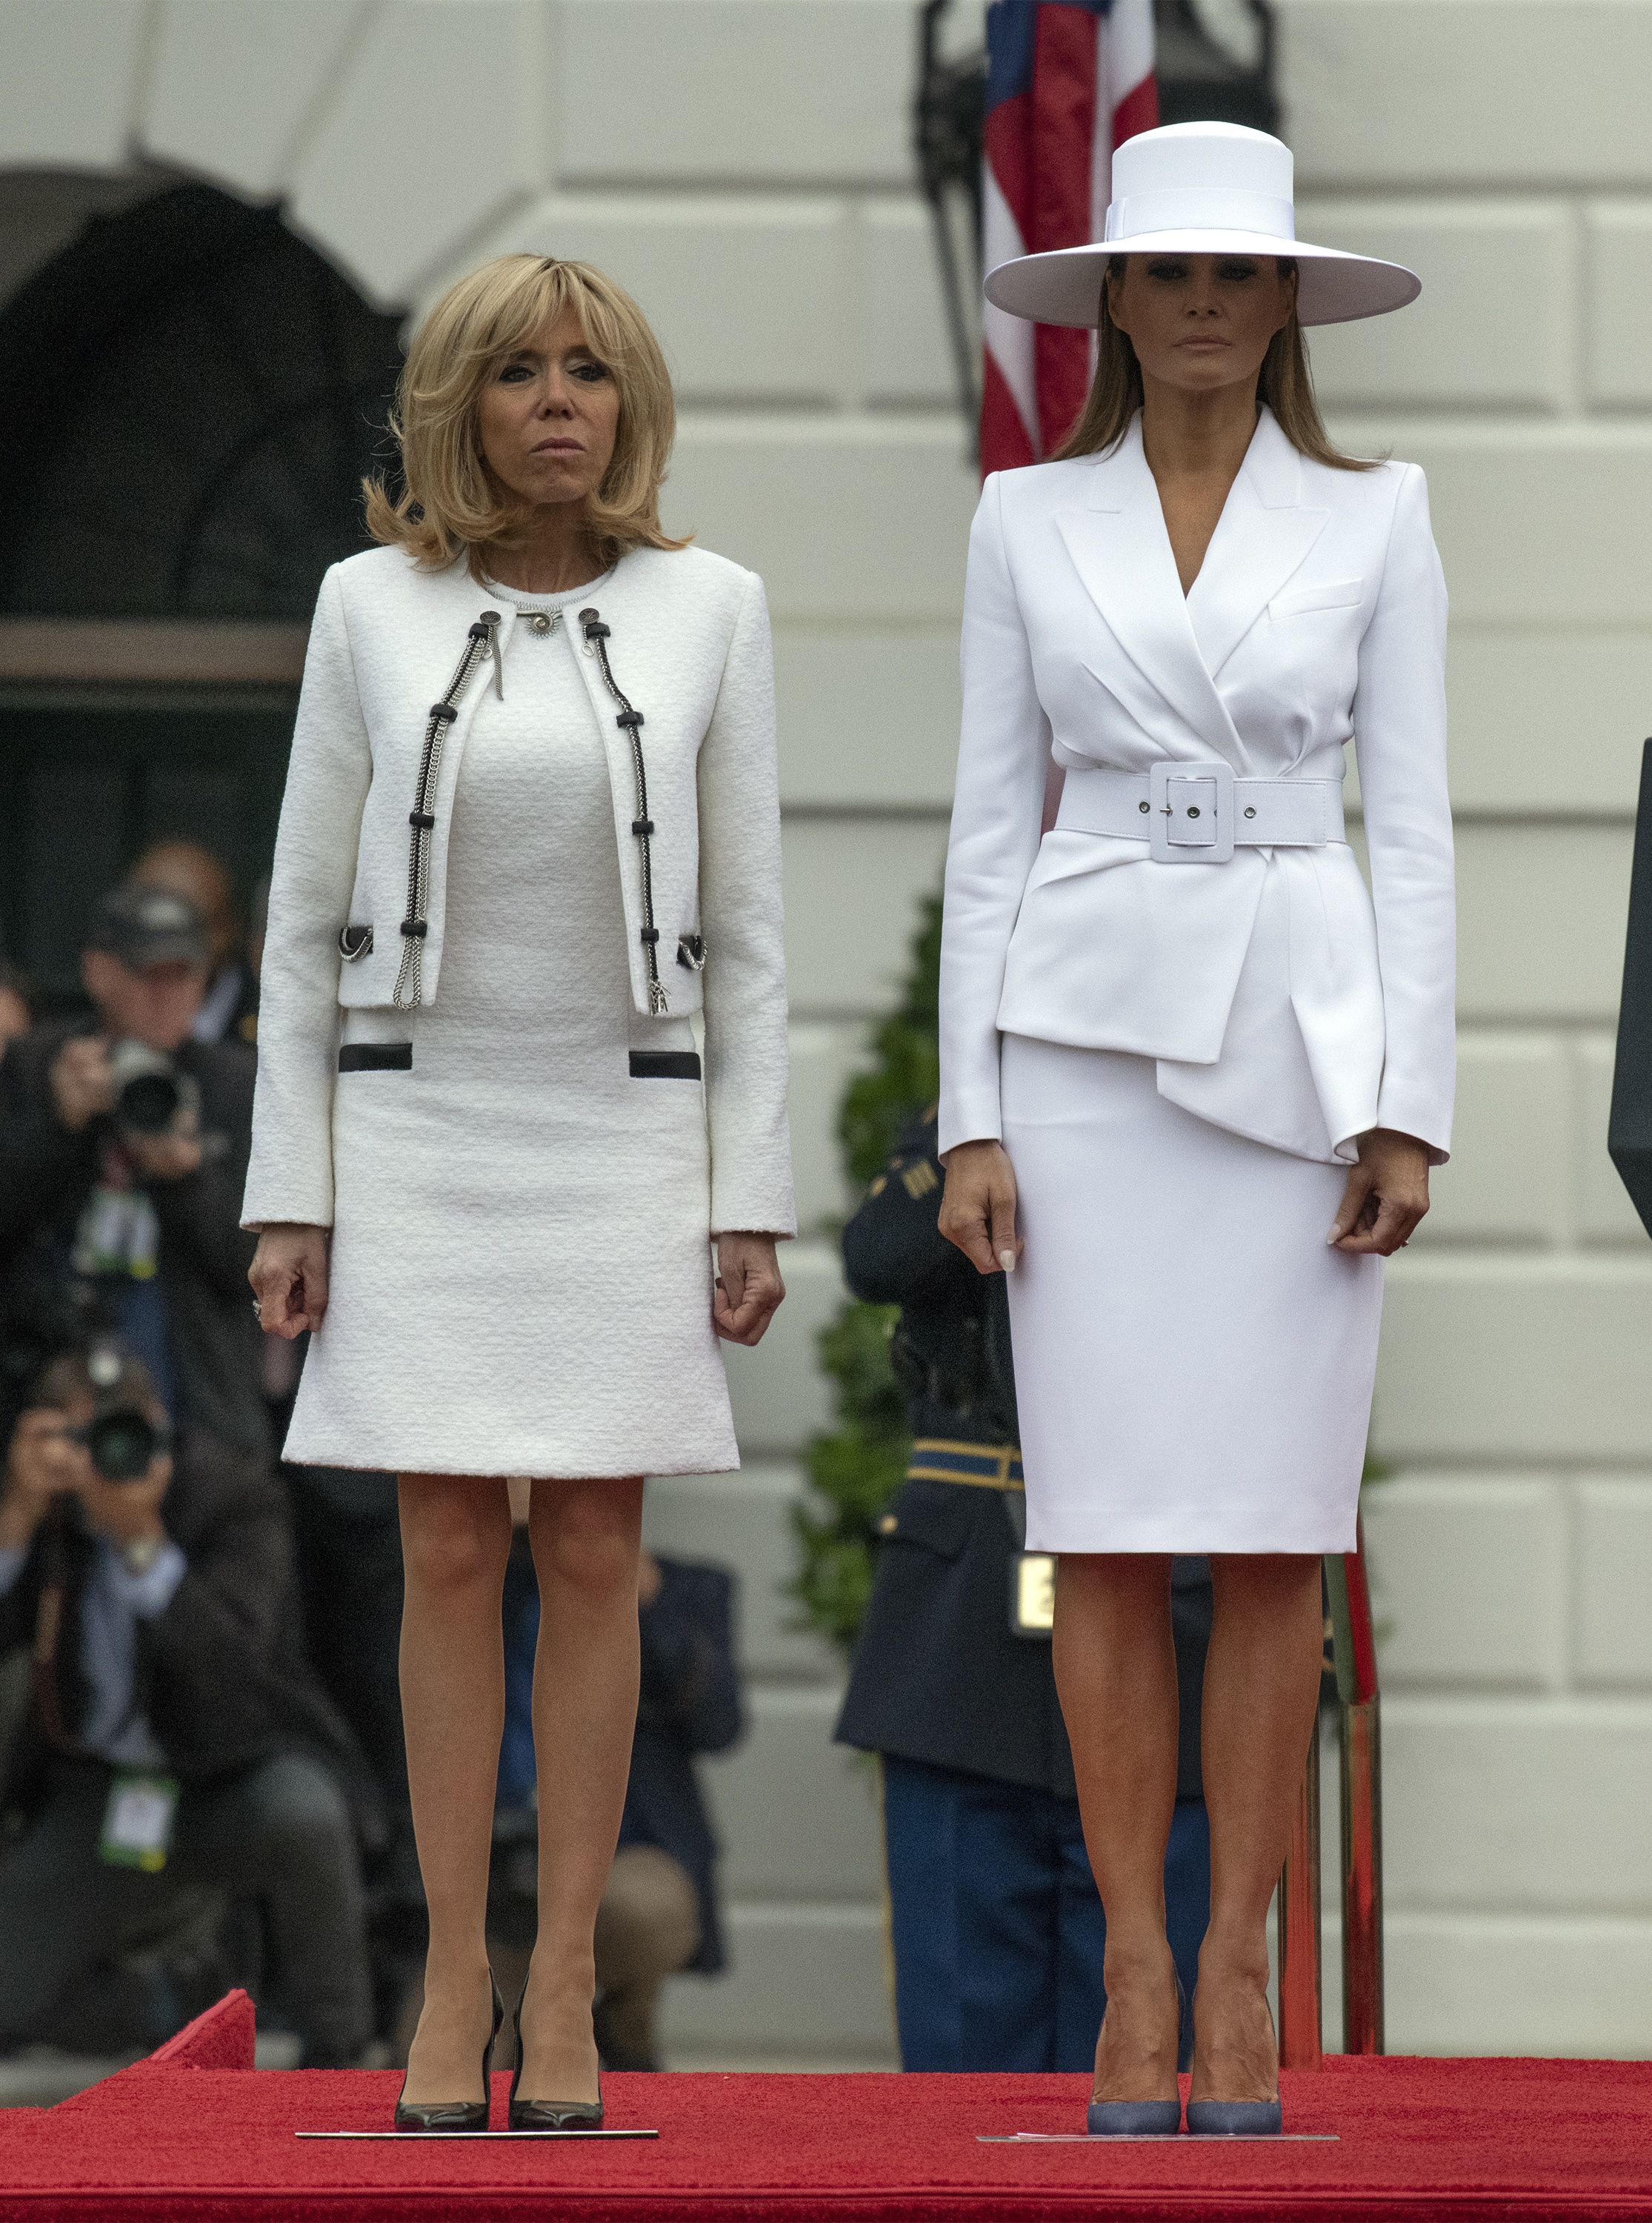 April 24, 2018 - Washington, District of Columbia, United States of America - United States President Donald J. Trump and first lady Melania Trump host an arrival ceremony for President Emmanuel Macron of France and his wife, Brigitte Macron, on the South Lawn of the White House in Washington, DC on Tuesday, April 24, 2018.. <P> Pictured: Brigitte Macron,, Melania Trump <B>Ref: SPL1687150  240418  </B><BR/> Picture by: Zuma / Splash News<BR/> </P><P> <B>Splash News and Pictures</B><BR/> Los Angeles:310-821-2666<BR/> New York:212-619-2666<BR/> London:870-934-2666<BR/> <span id=